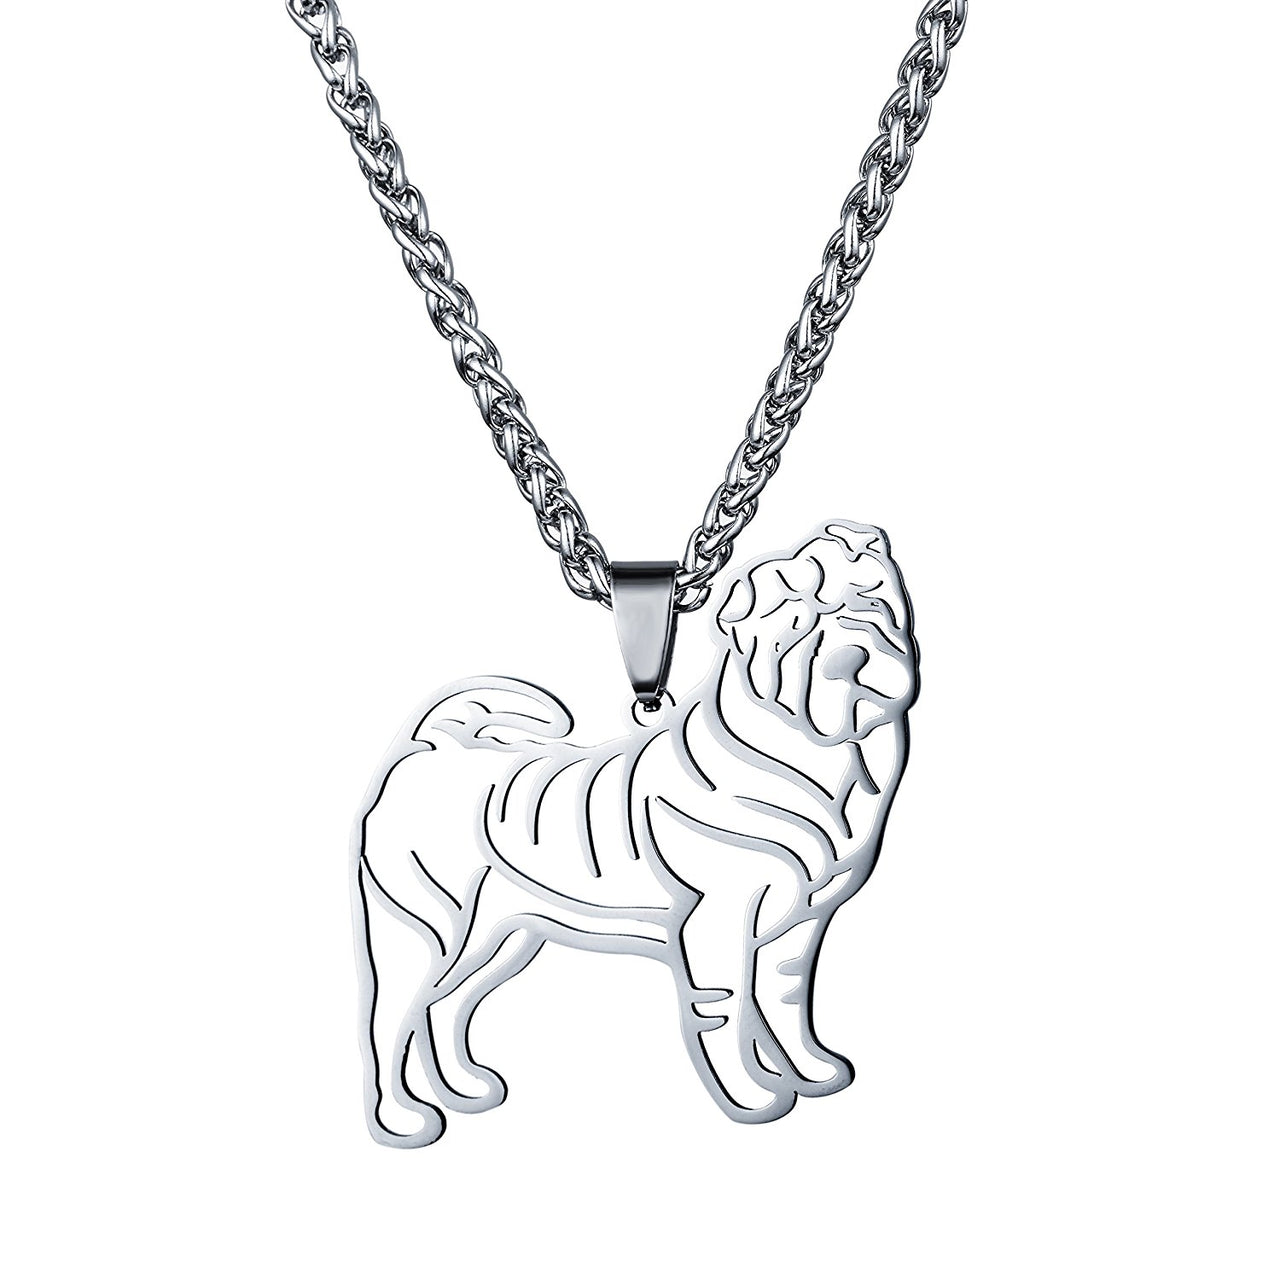 Stainless Steel Sharpei Chinese Shar Pei Outline Pet Dog Tag Breed Collar Charm Pendant Necklace